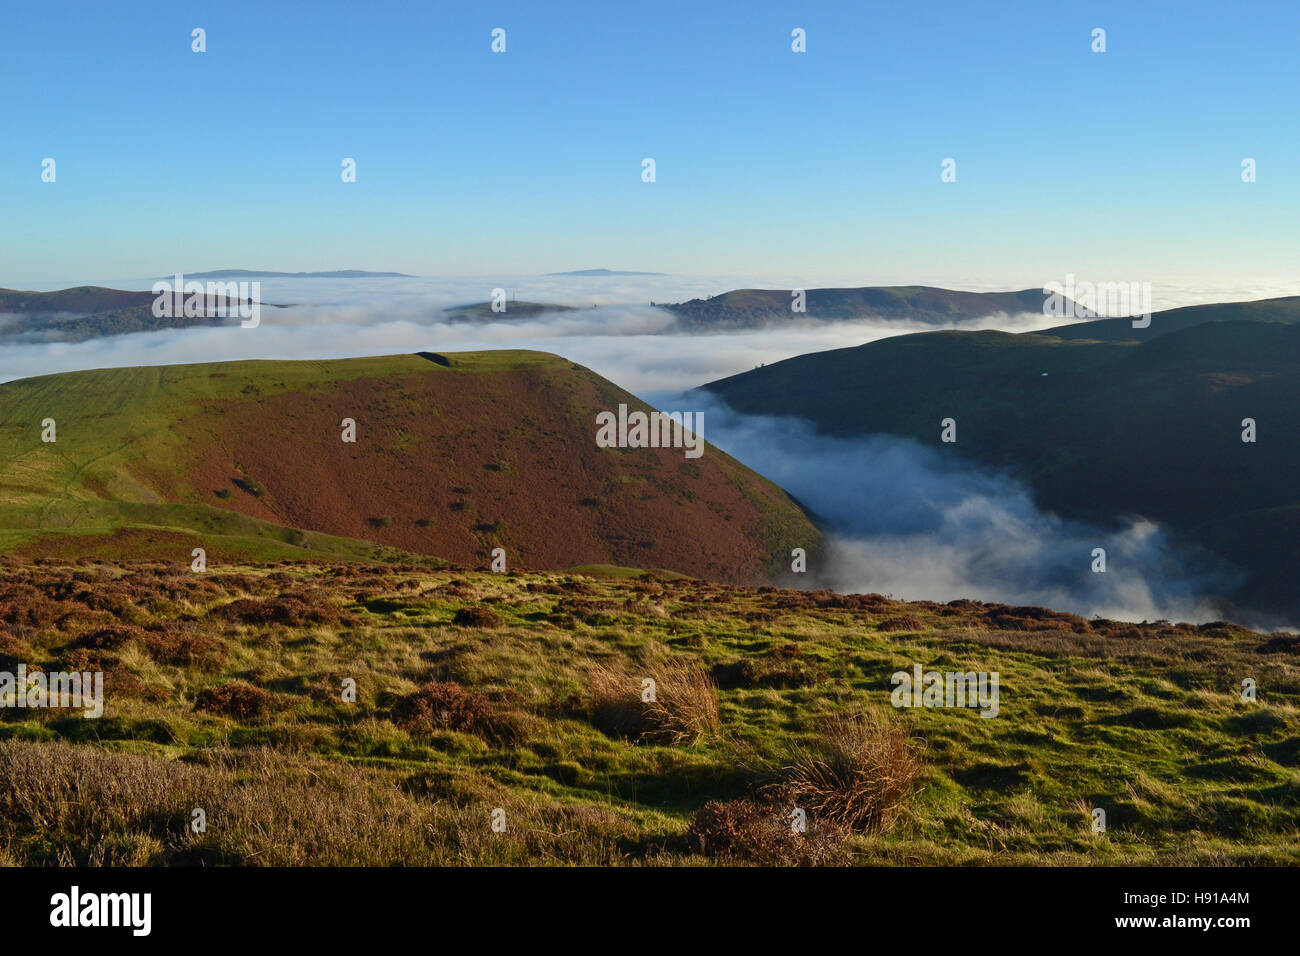 View from the Long Mynd, looking down over clouds in Carding Mill Valley, Church Stretton, Shropshire, UK Stock Photo